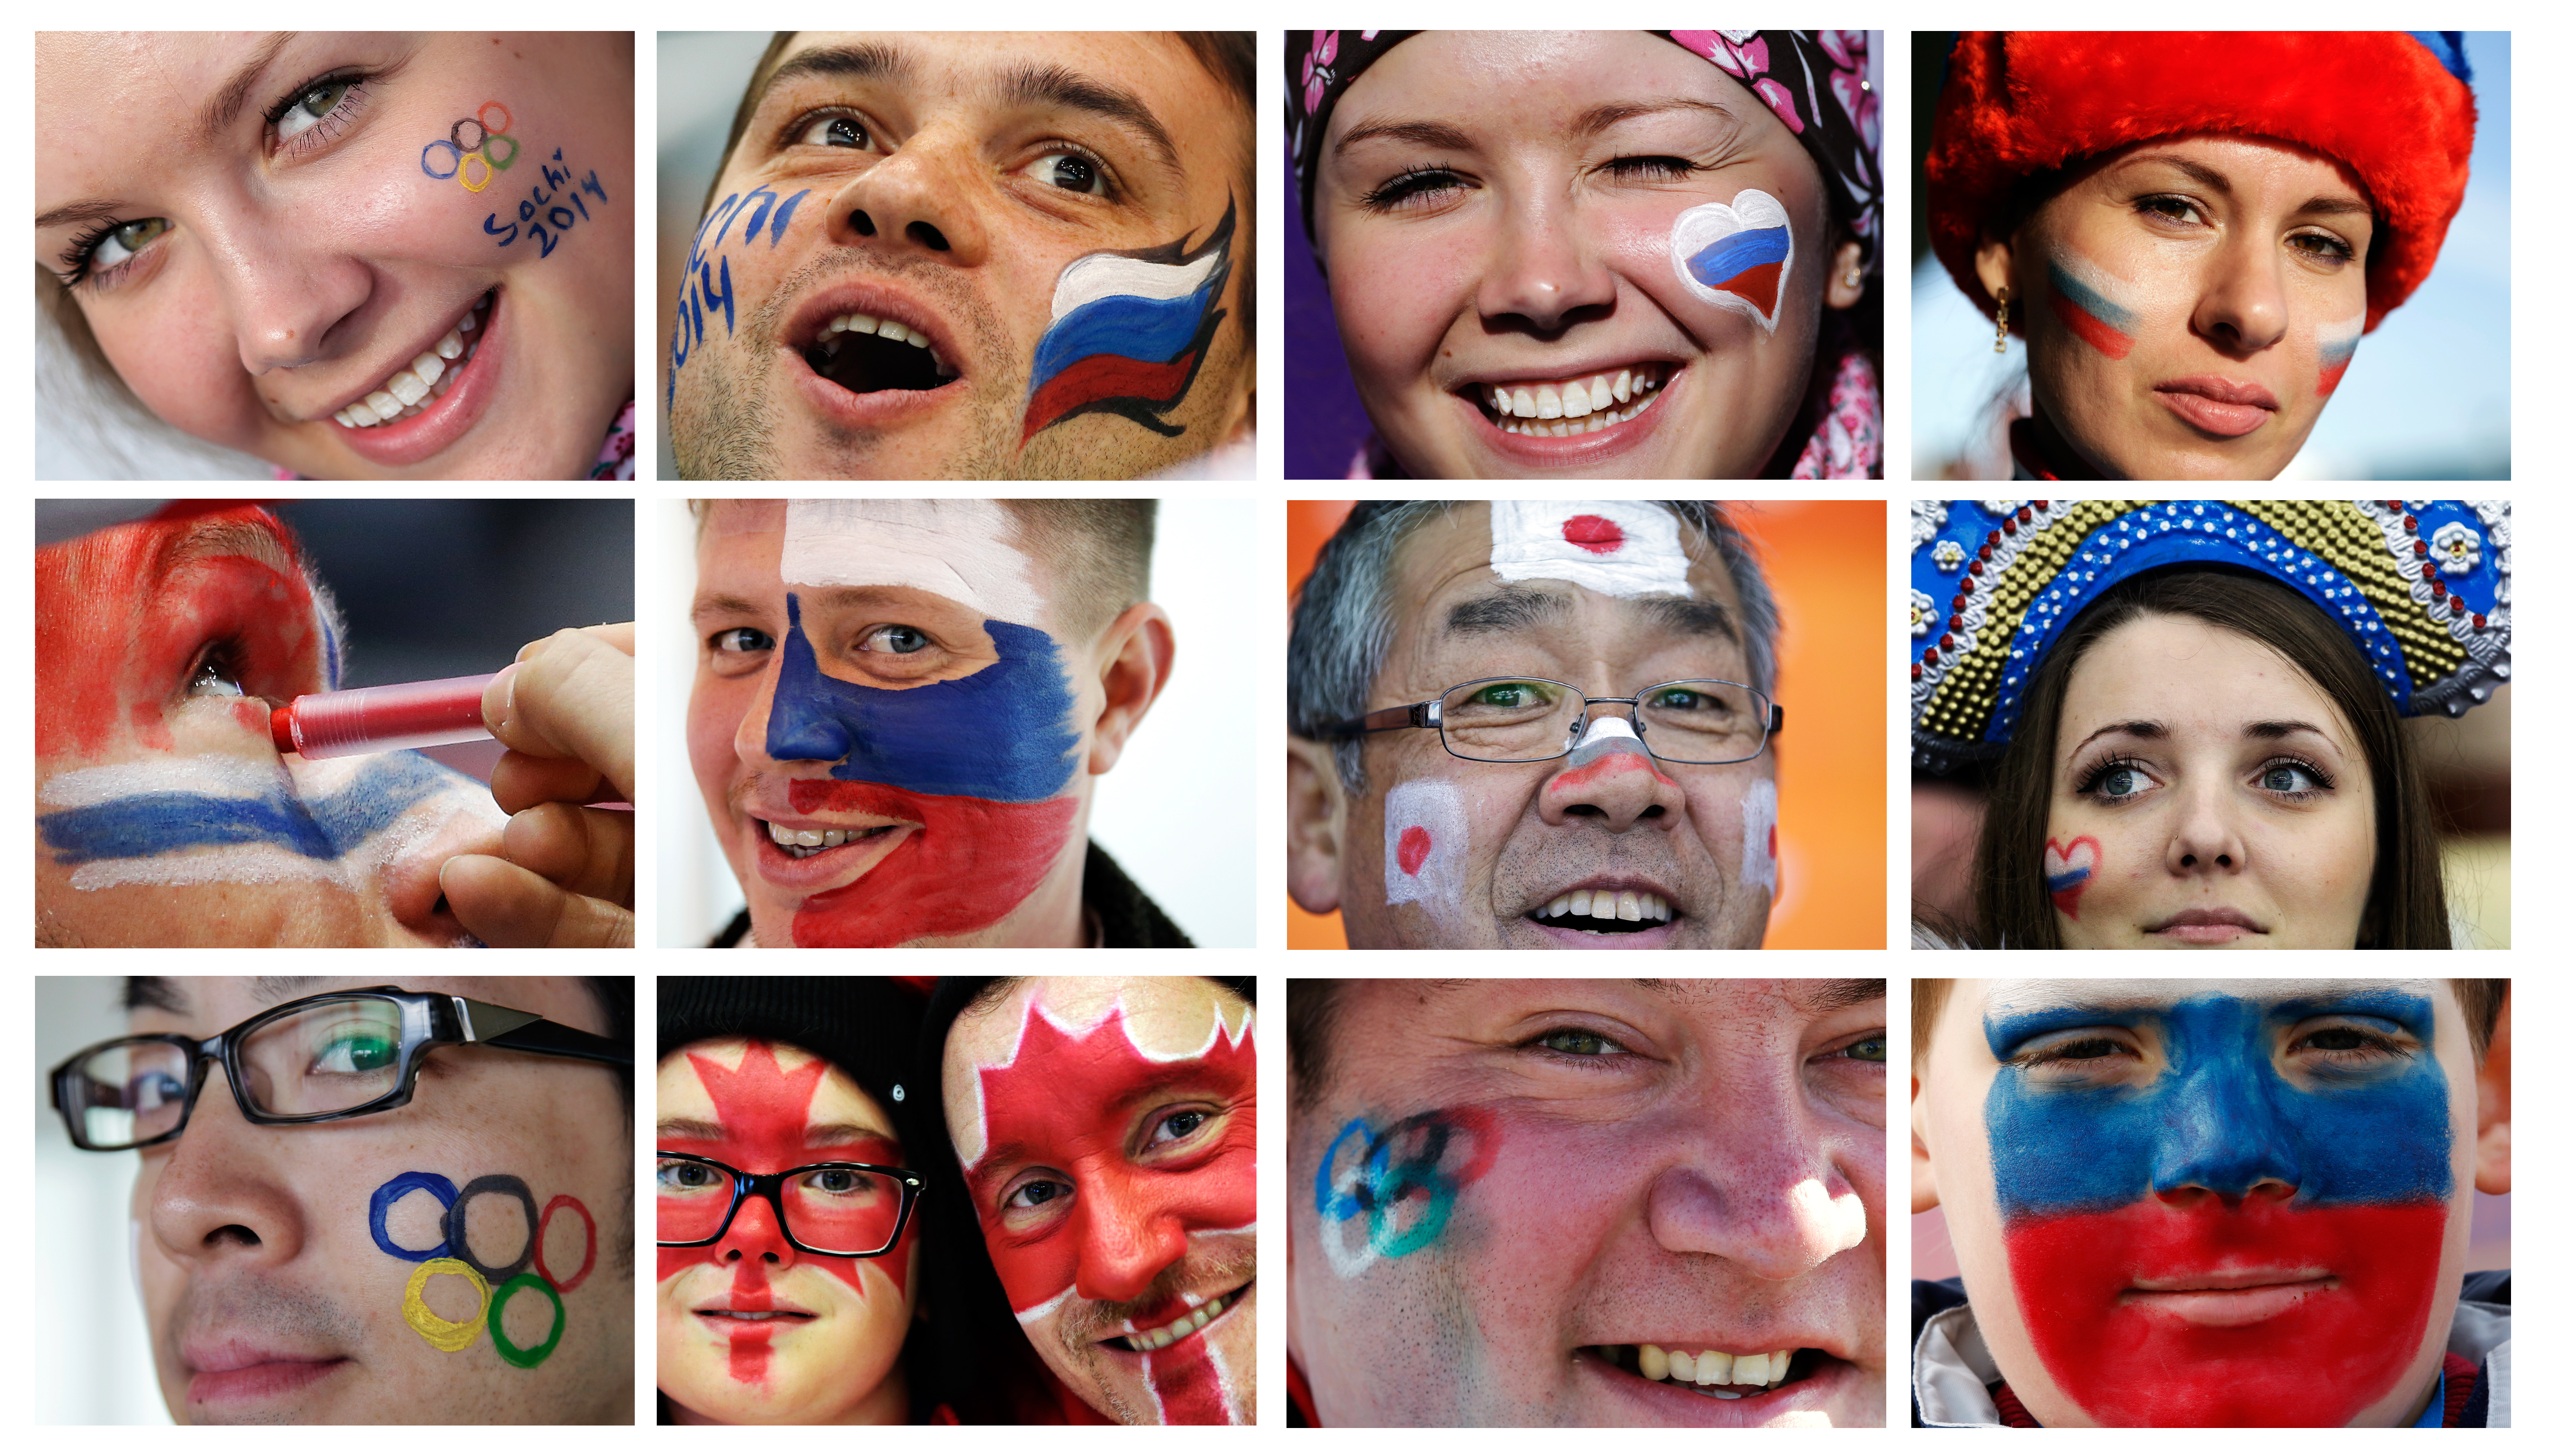 In this combination of photos taken between Feb. 9 and Feb. 13, 2014, spectators at the 2014 Winter Olympics in Sochi, Russia, show their national pride with face paint. (AP Photo)